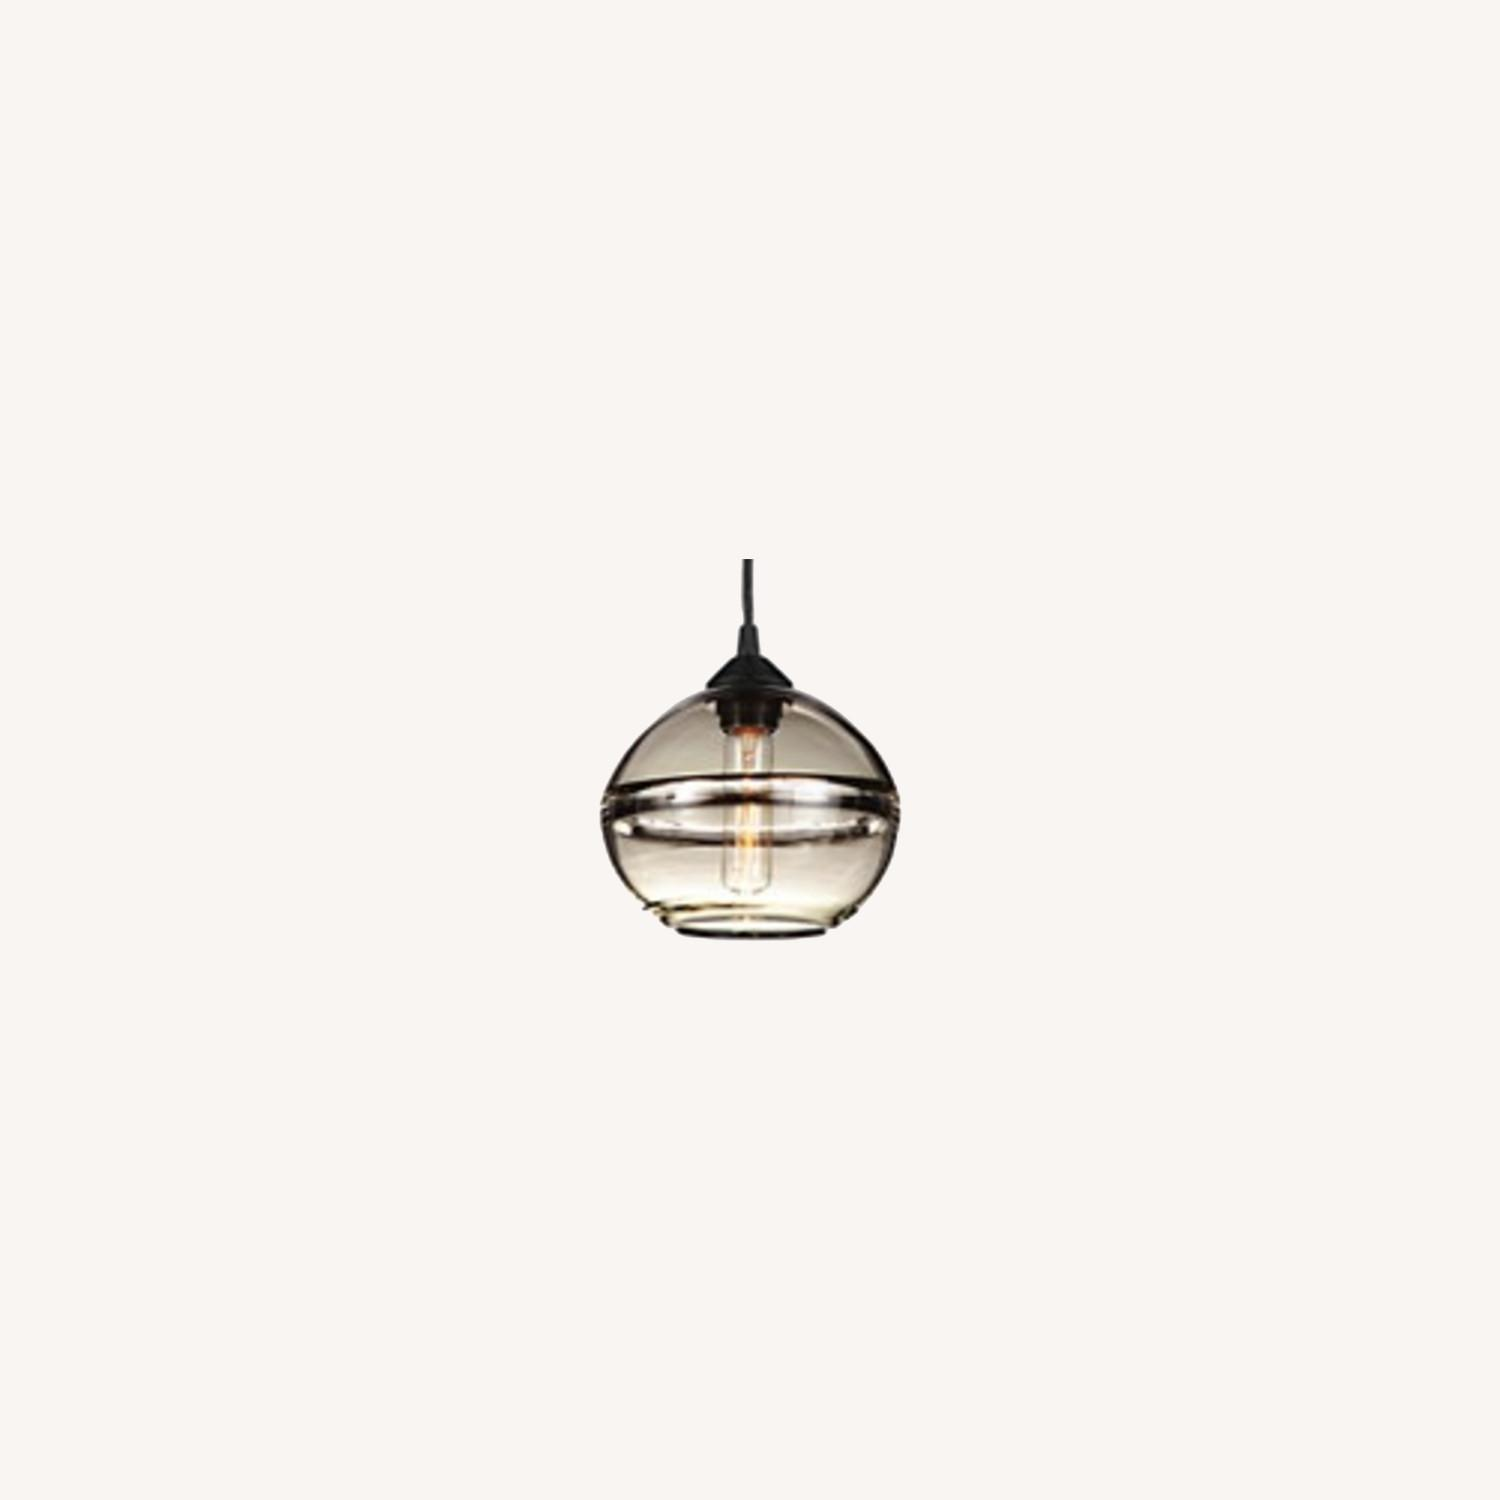 Room and Board Banded Pendant Light (1) - image-0